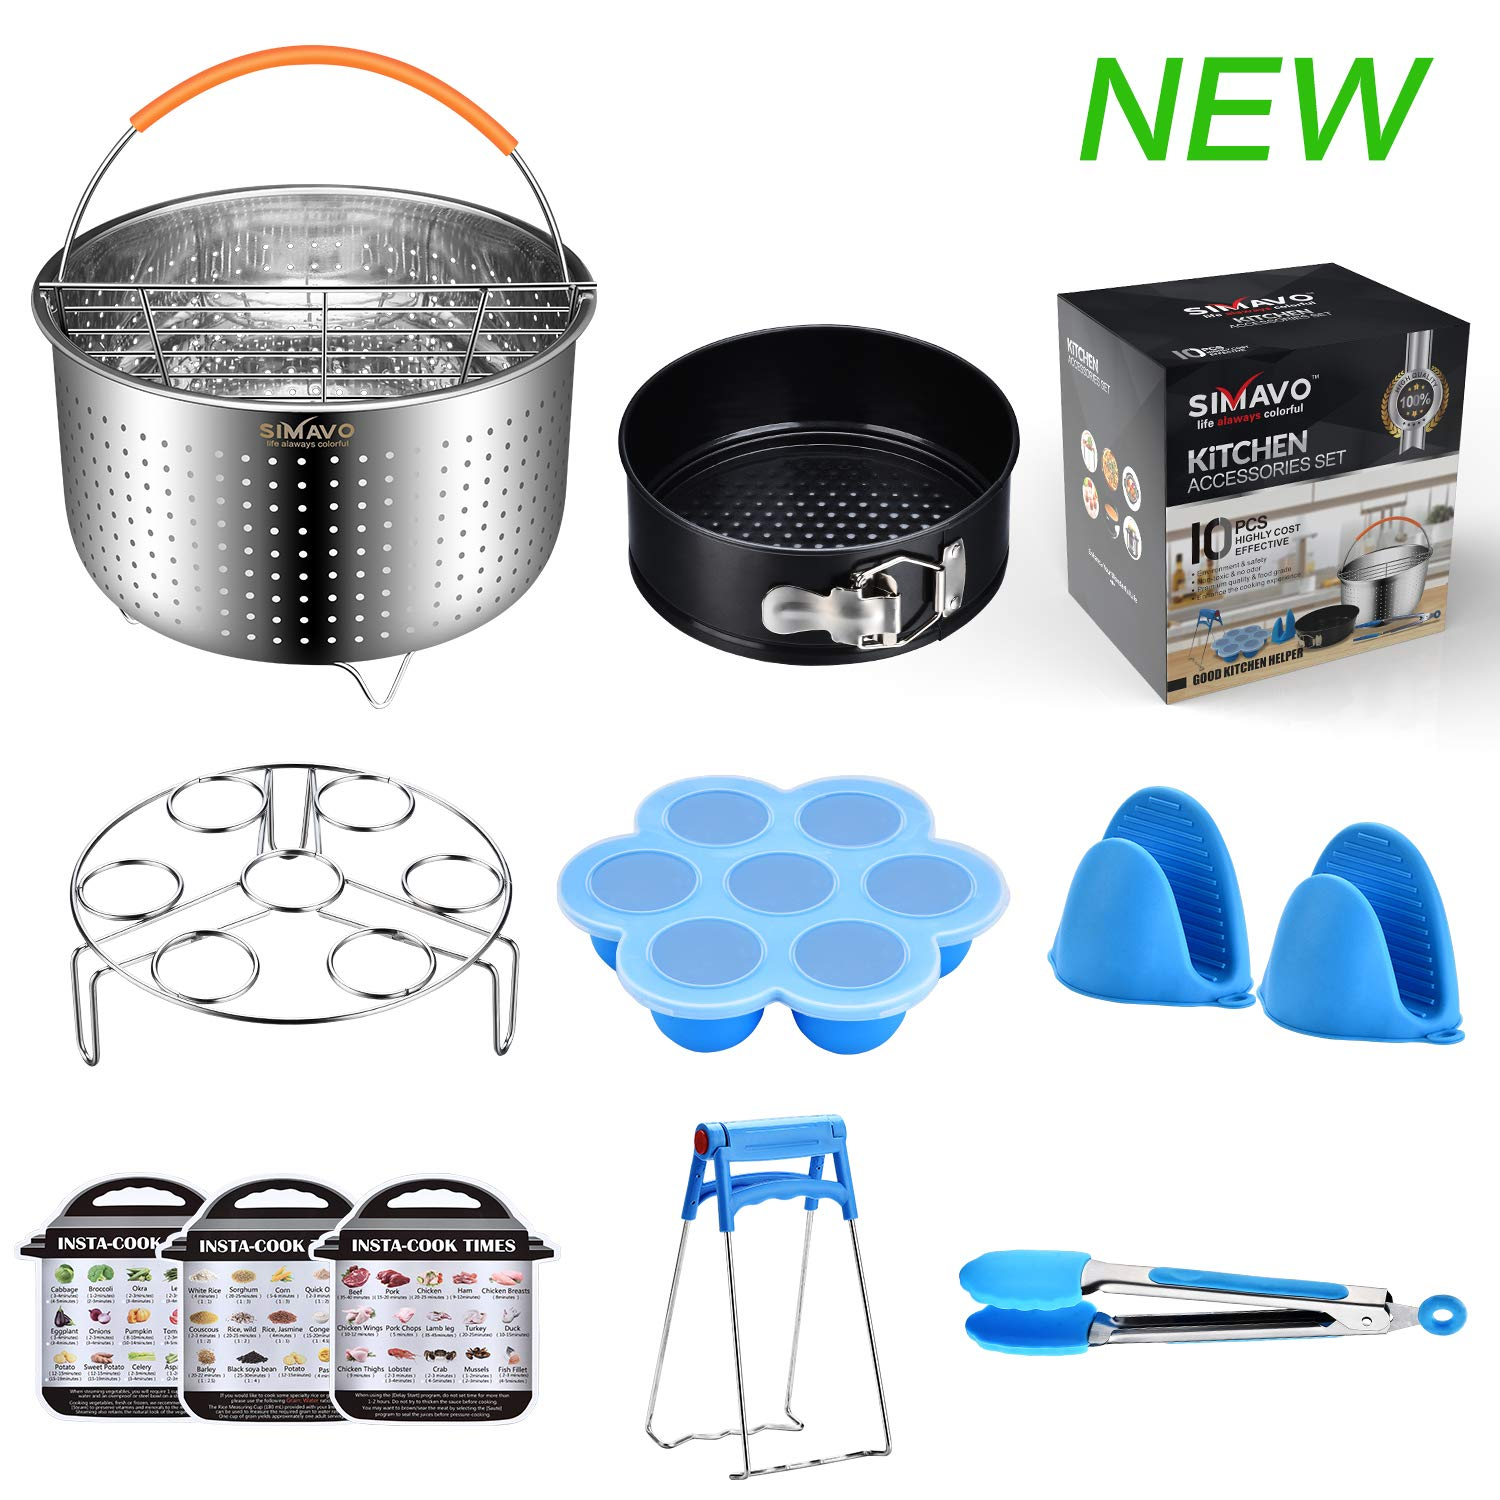 SIMAVO Pressure Cooker Accessories Set Compatible with Instant Pot 6,8 QT -New Steamer Basket | Egg Steamer Rack | Springform cake Pan | Egg Bites Mold | Magnet cooking time and more, 10+Pcs